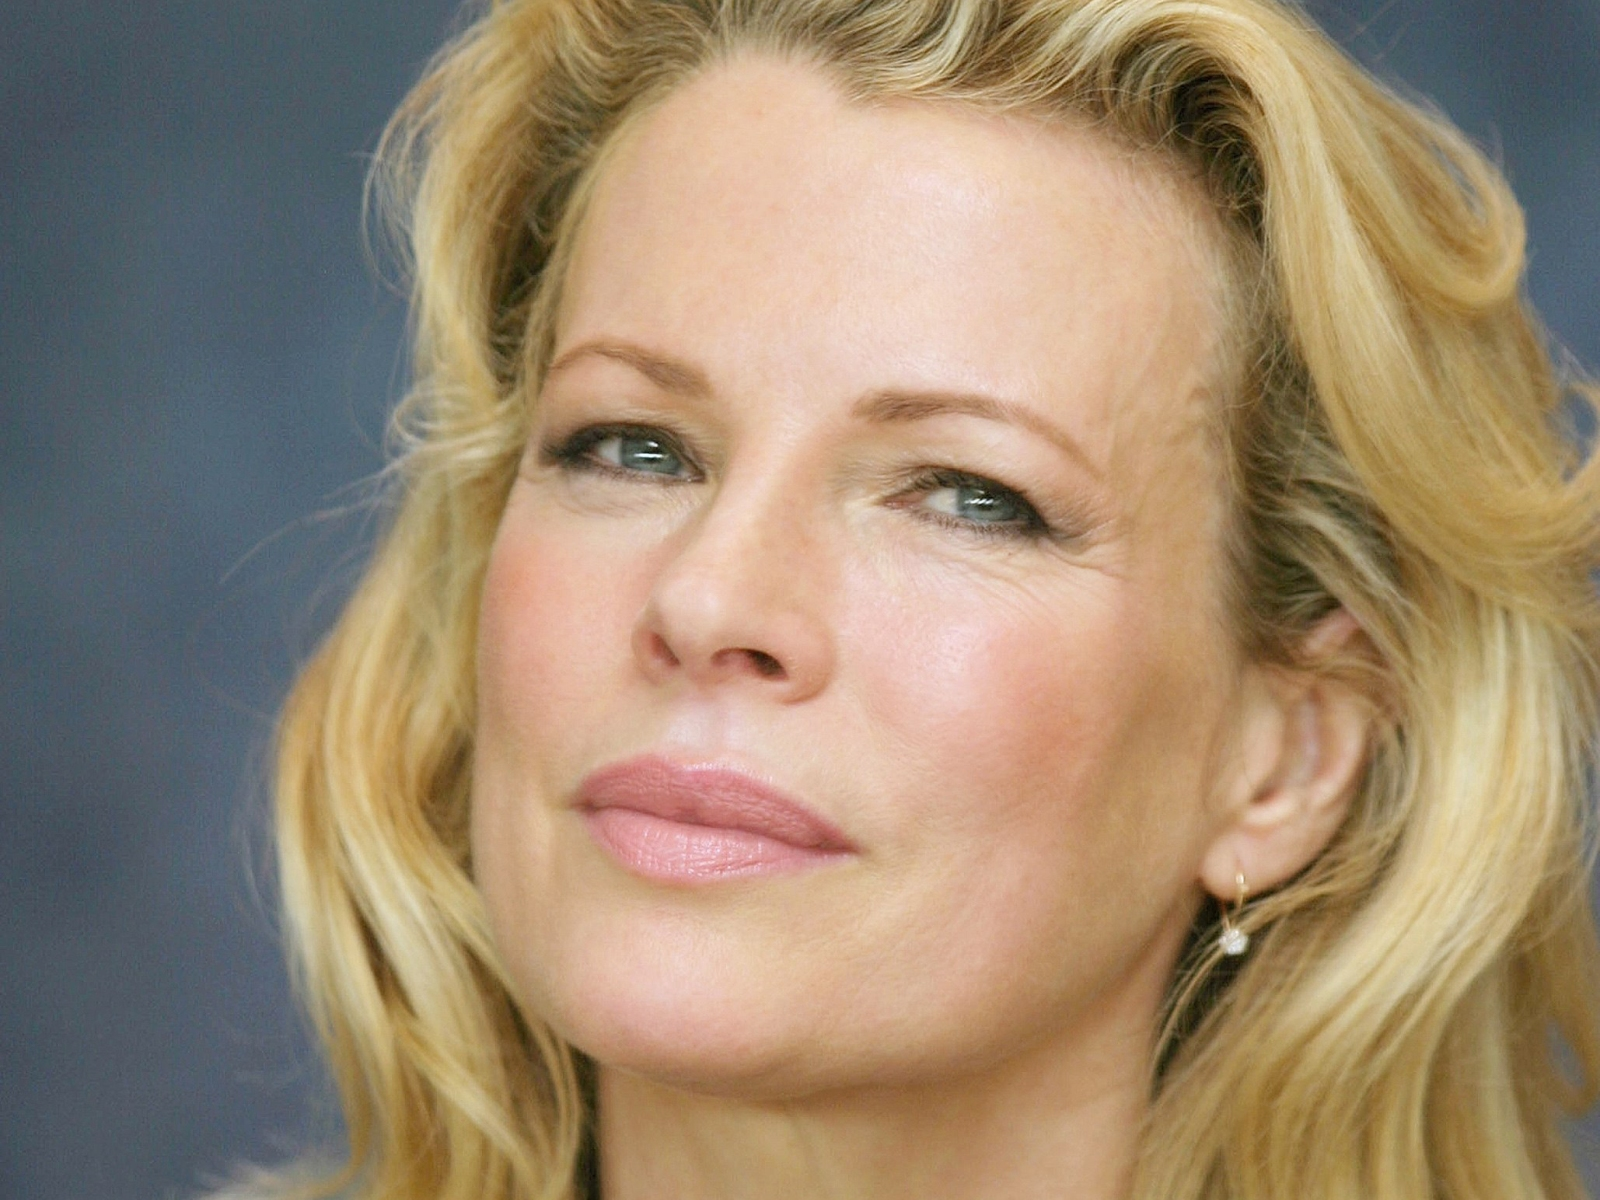 Fonds D Cran Kim Basinger Pc Et Tablettes Ipad Etc - [src]